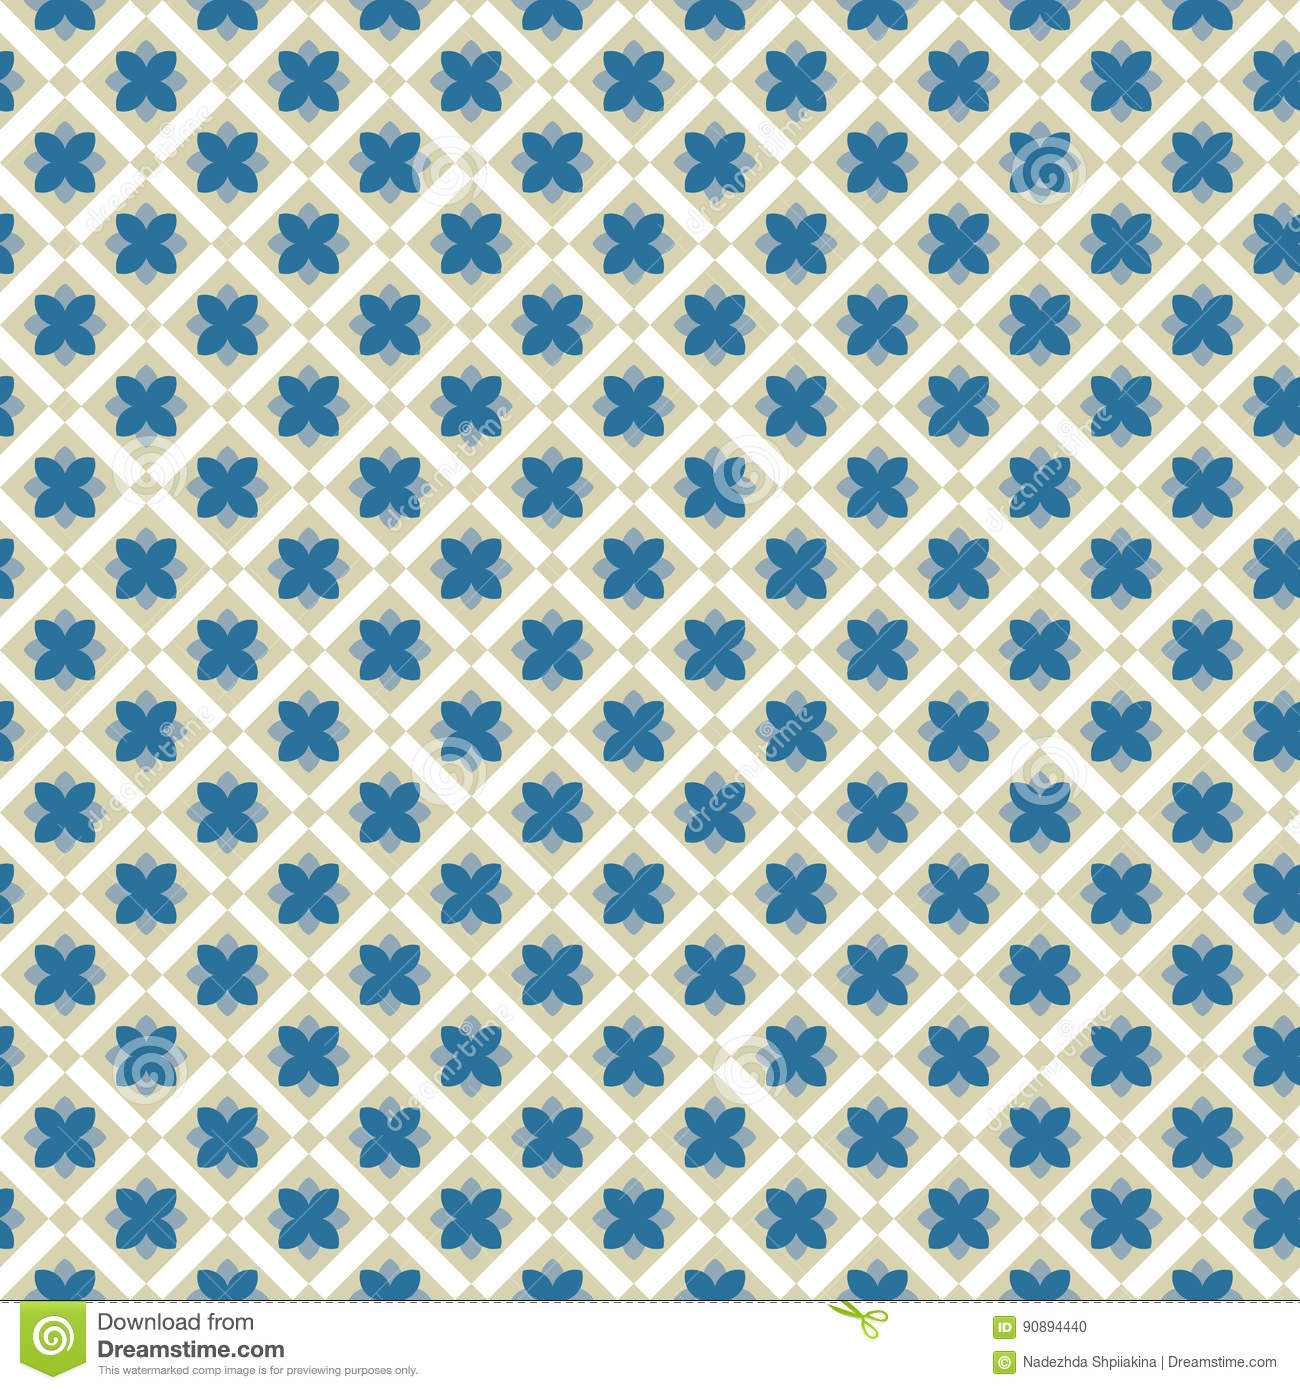 Vintage Luxury Flowers Seamless Pattern Background Retro